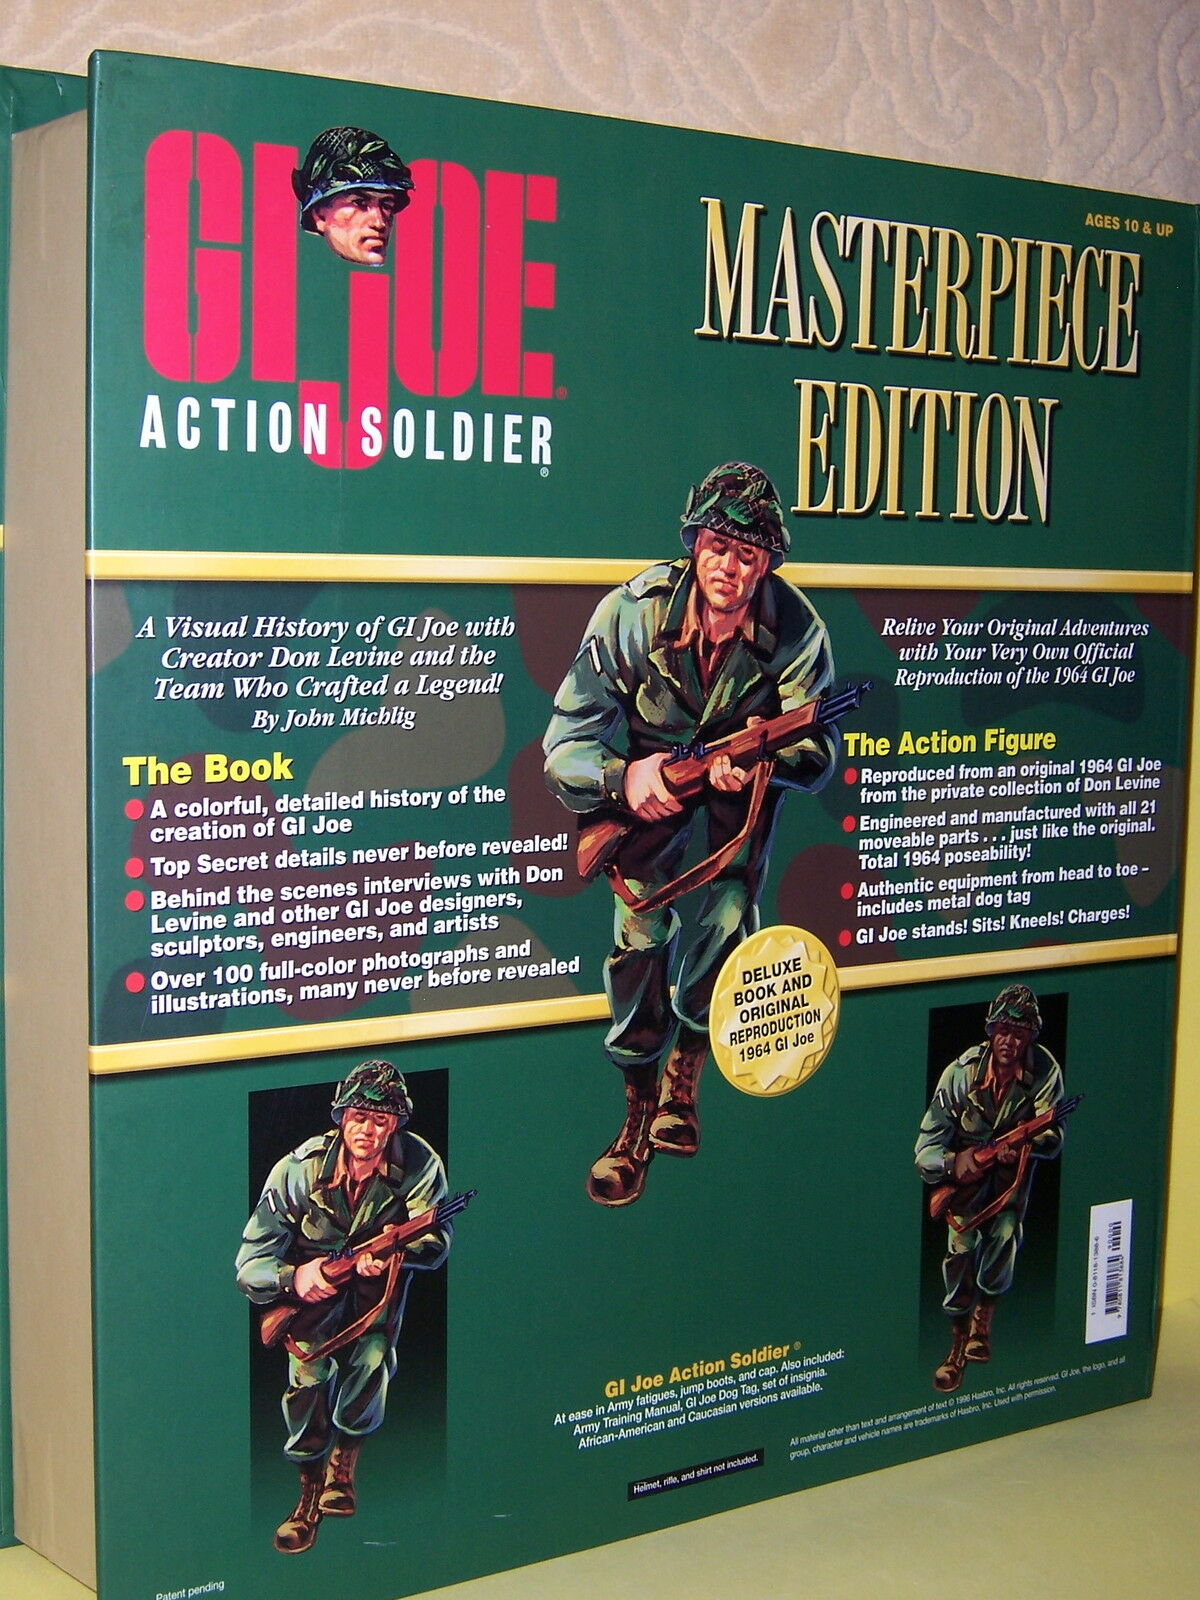 GI JOE ACTION SOLDIER, MASTERPIECE EDITION, NIB 1996 1996 1996 d8f14f